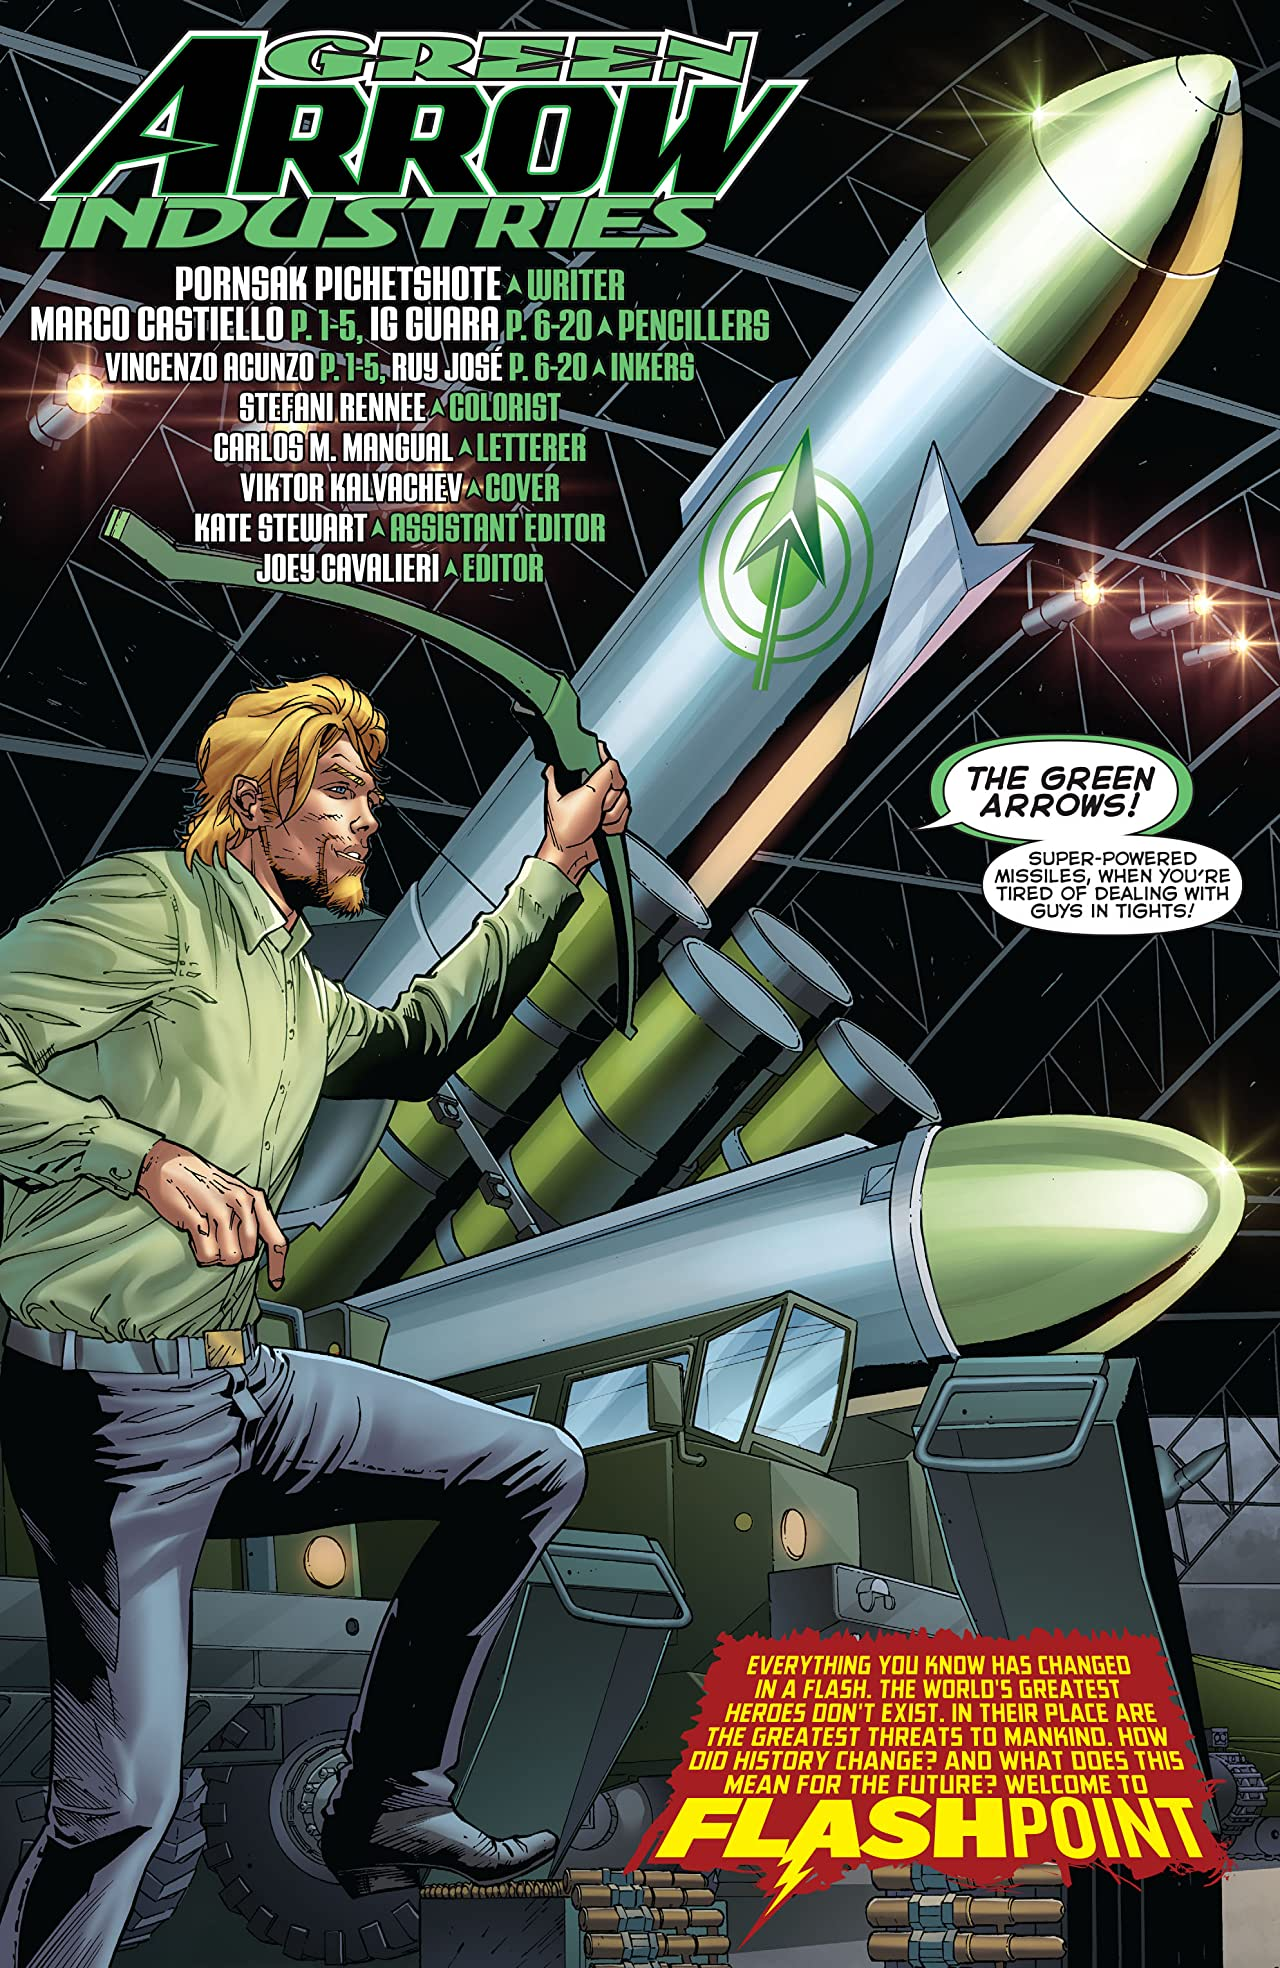 Flashpoint: Green Arrow Industries